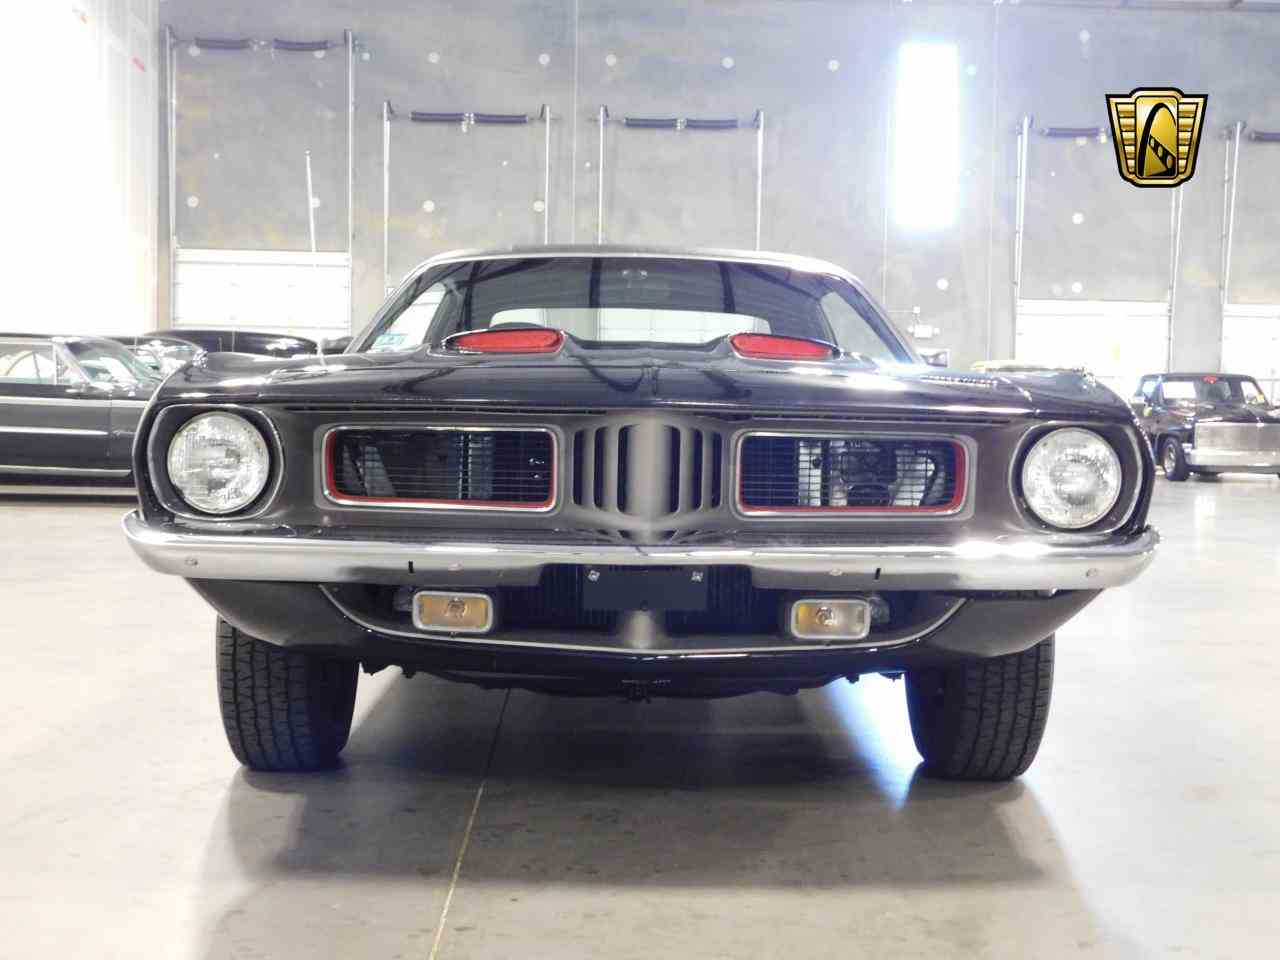 Large Picture of 1972 Plymouth Barracuda located in Alpharetta Georgia - $44,995.00 Offered by Gateway Classic Cars - Atlanta - MZG1